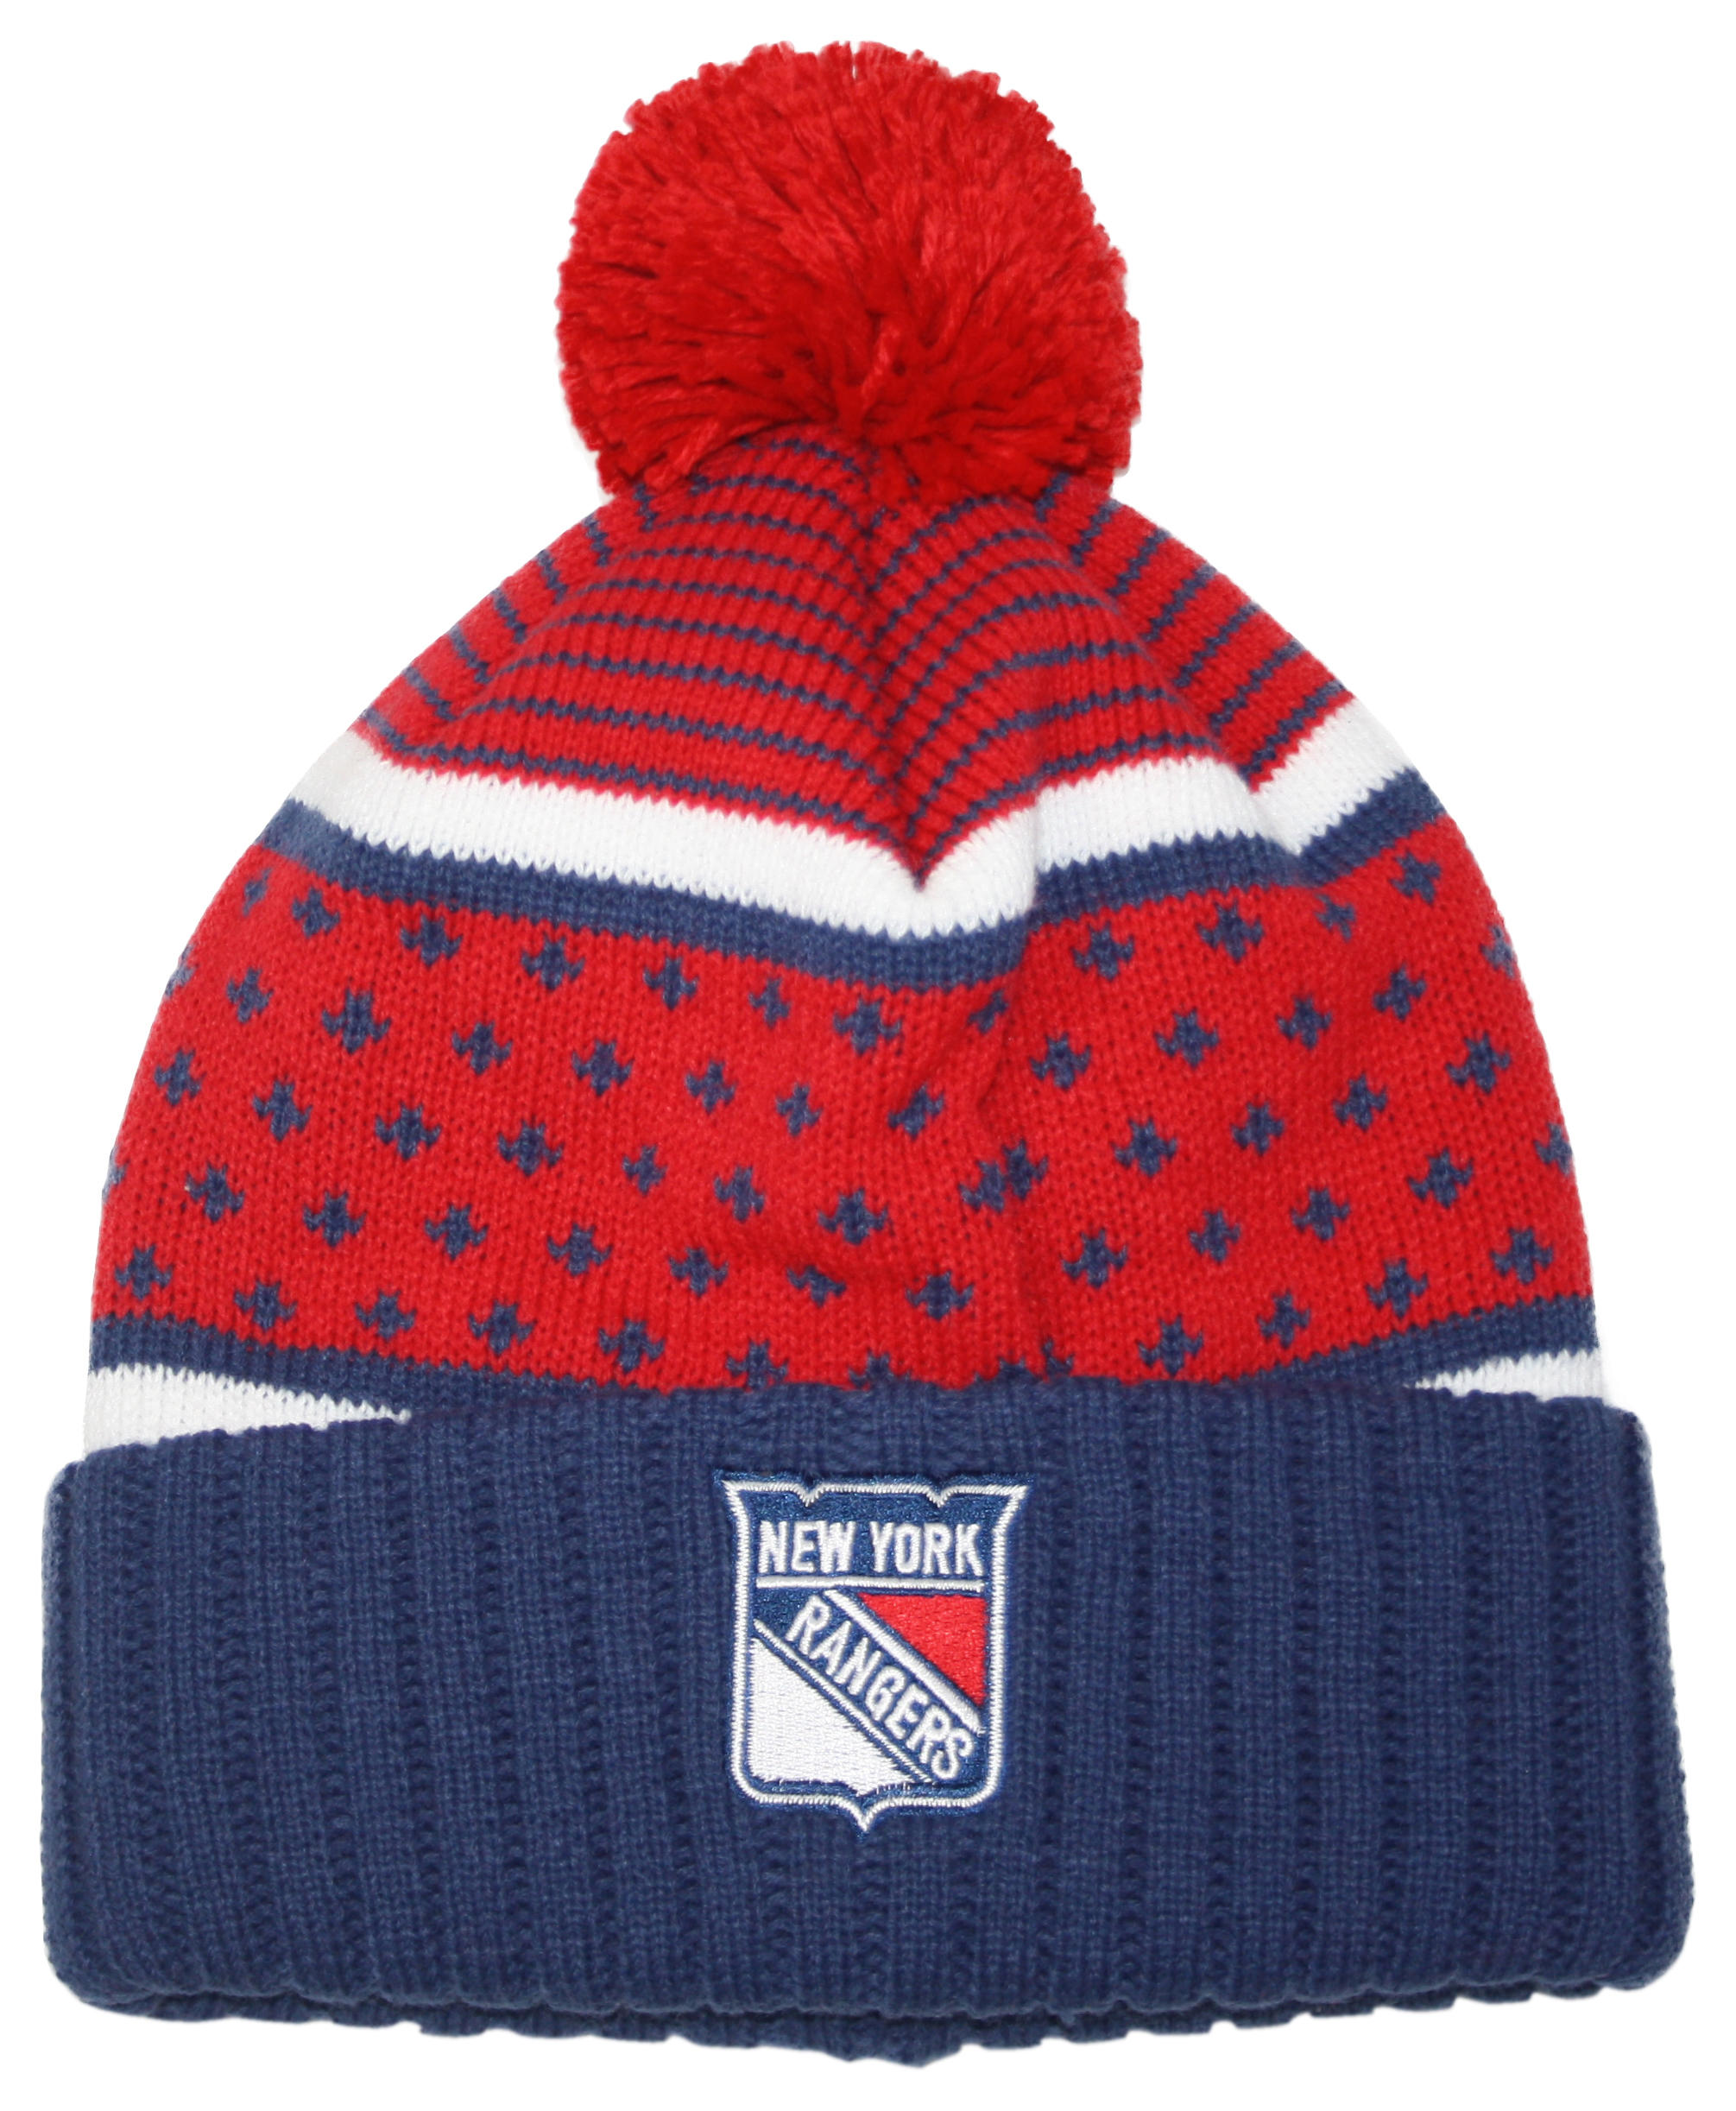 4a684ca20 The Highlands Cuffed Pom Beanie New York Rangers